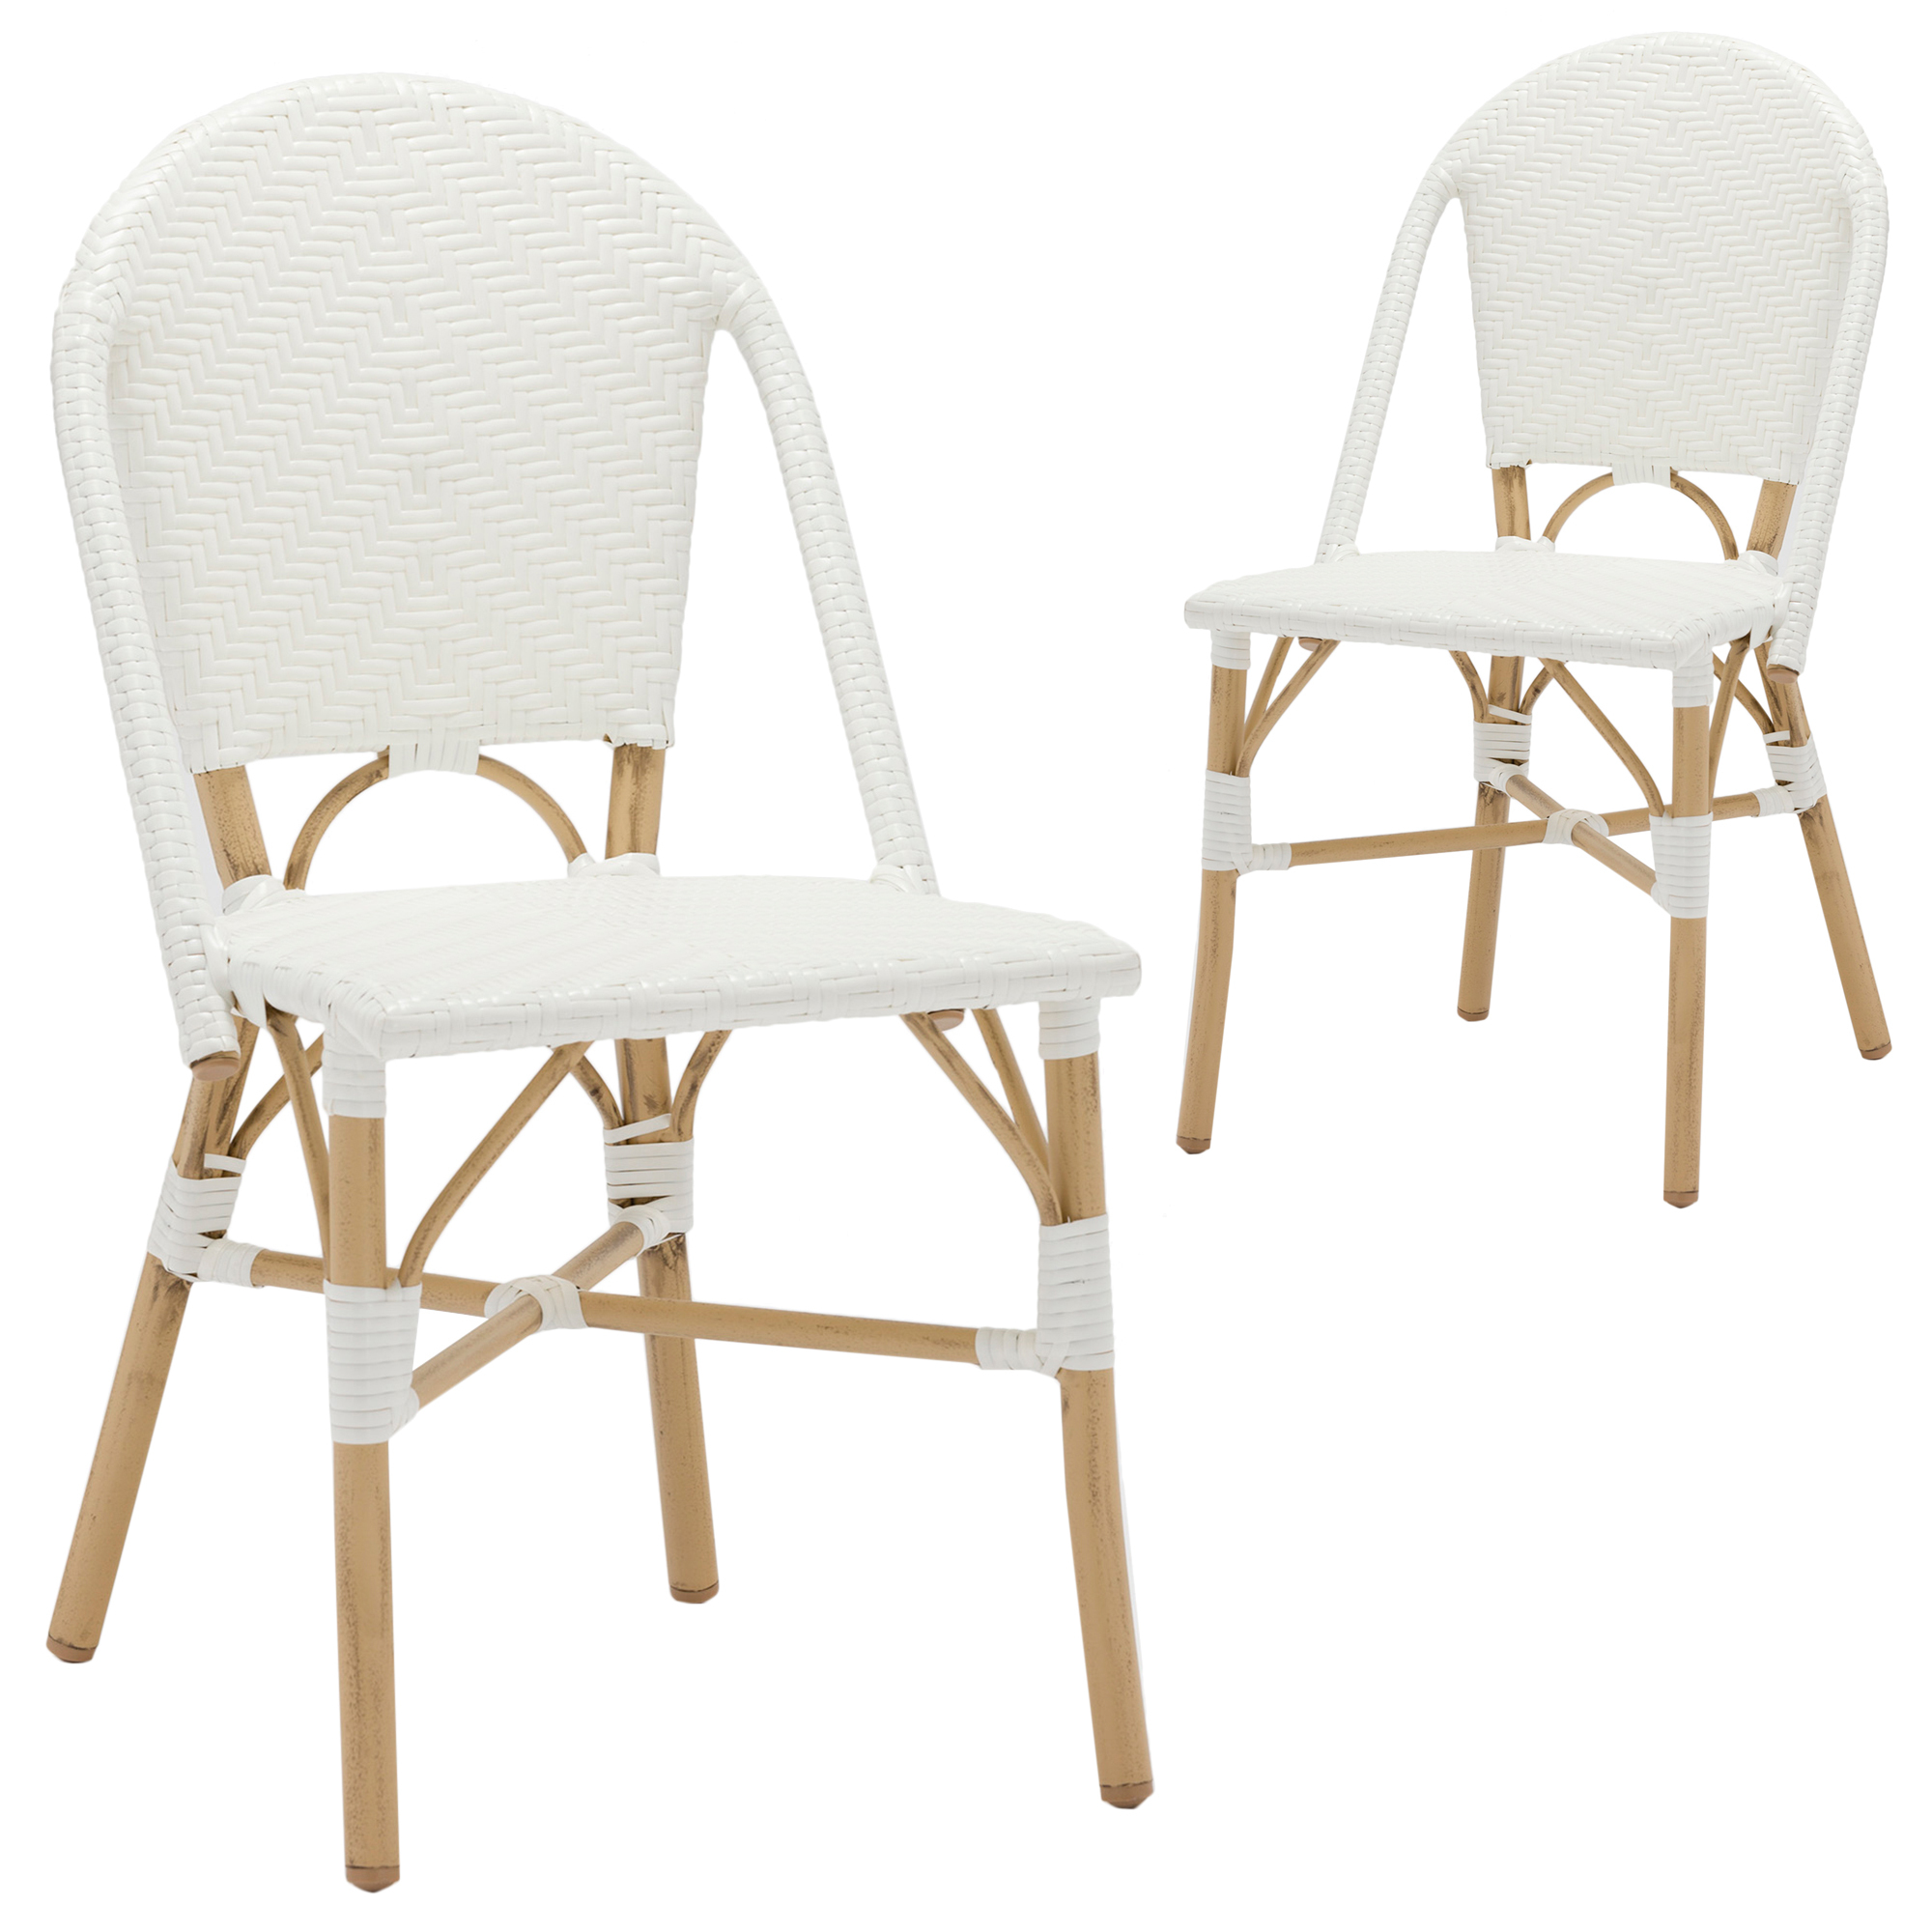 parisian cafe table and chairs folding chair lazada white paris faux wicker dining temple webster sku tpwt2718 is also sometimes listed under the following manufacturer numbers bqpdcwhw